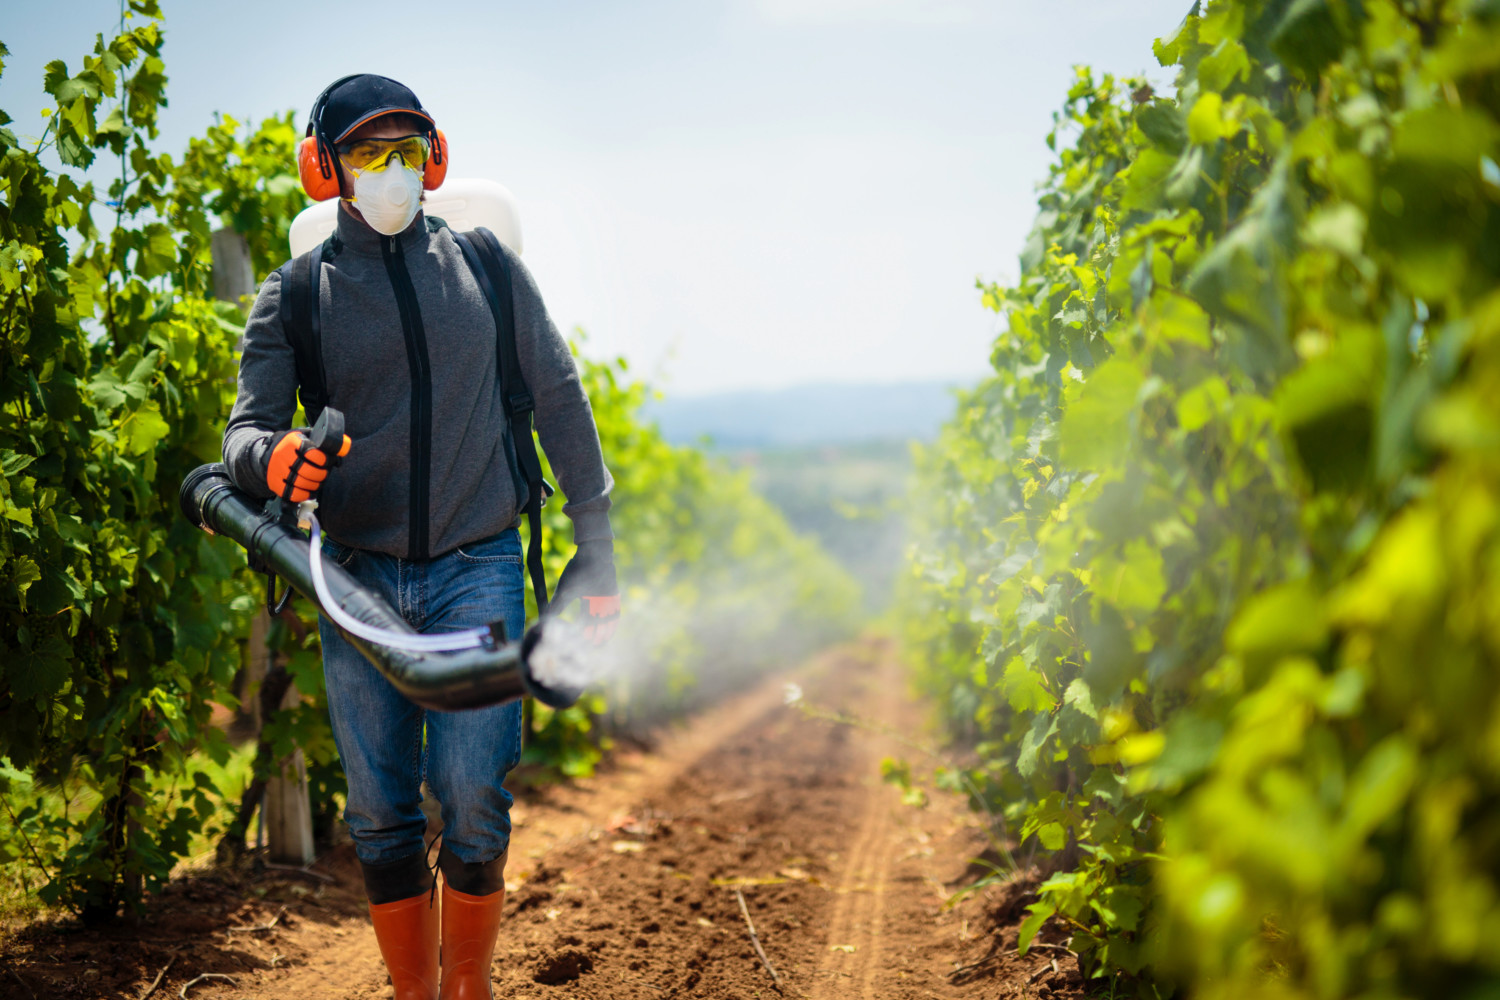 Agriculture worker. Young farmer spraying pesticides.